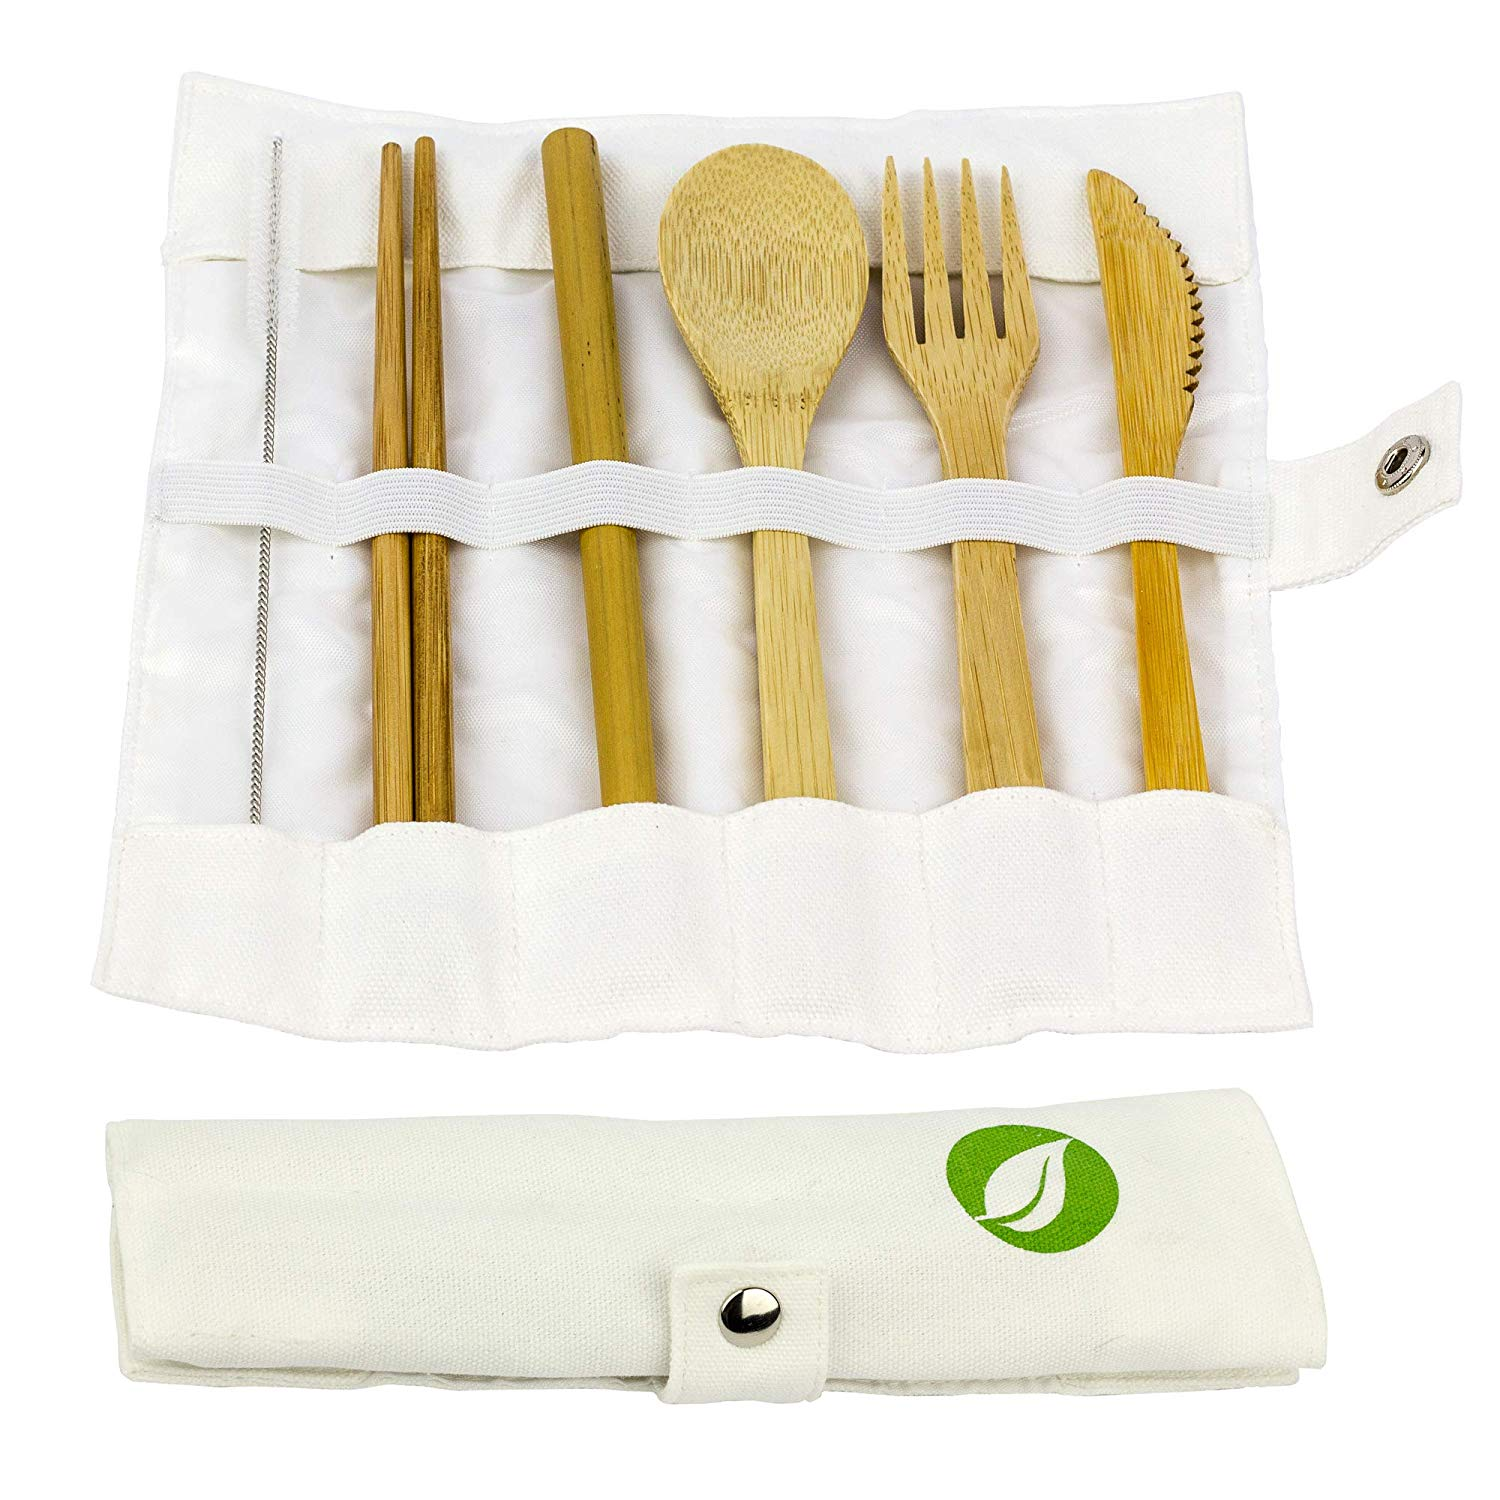 BAMBOO CUTLERY SET FOR TRAVEL